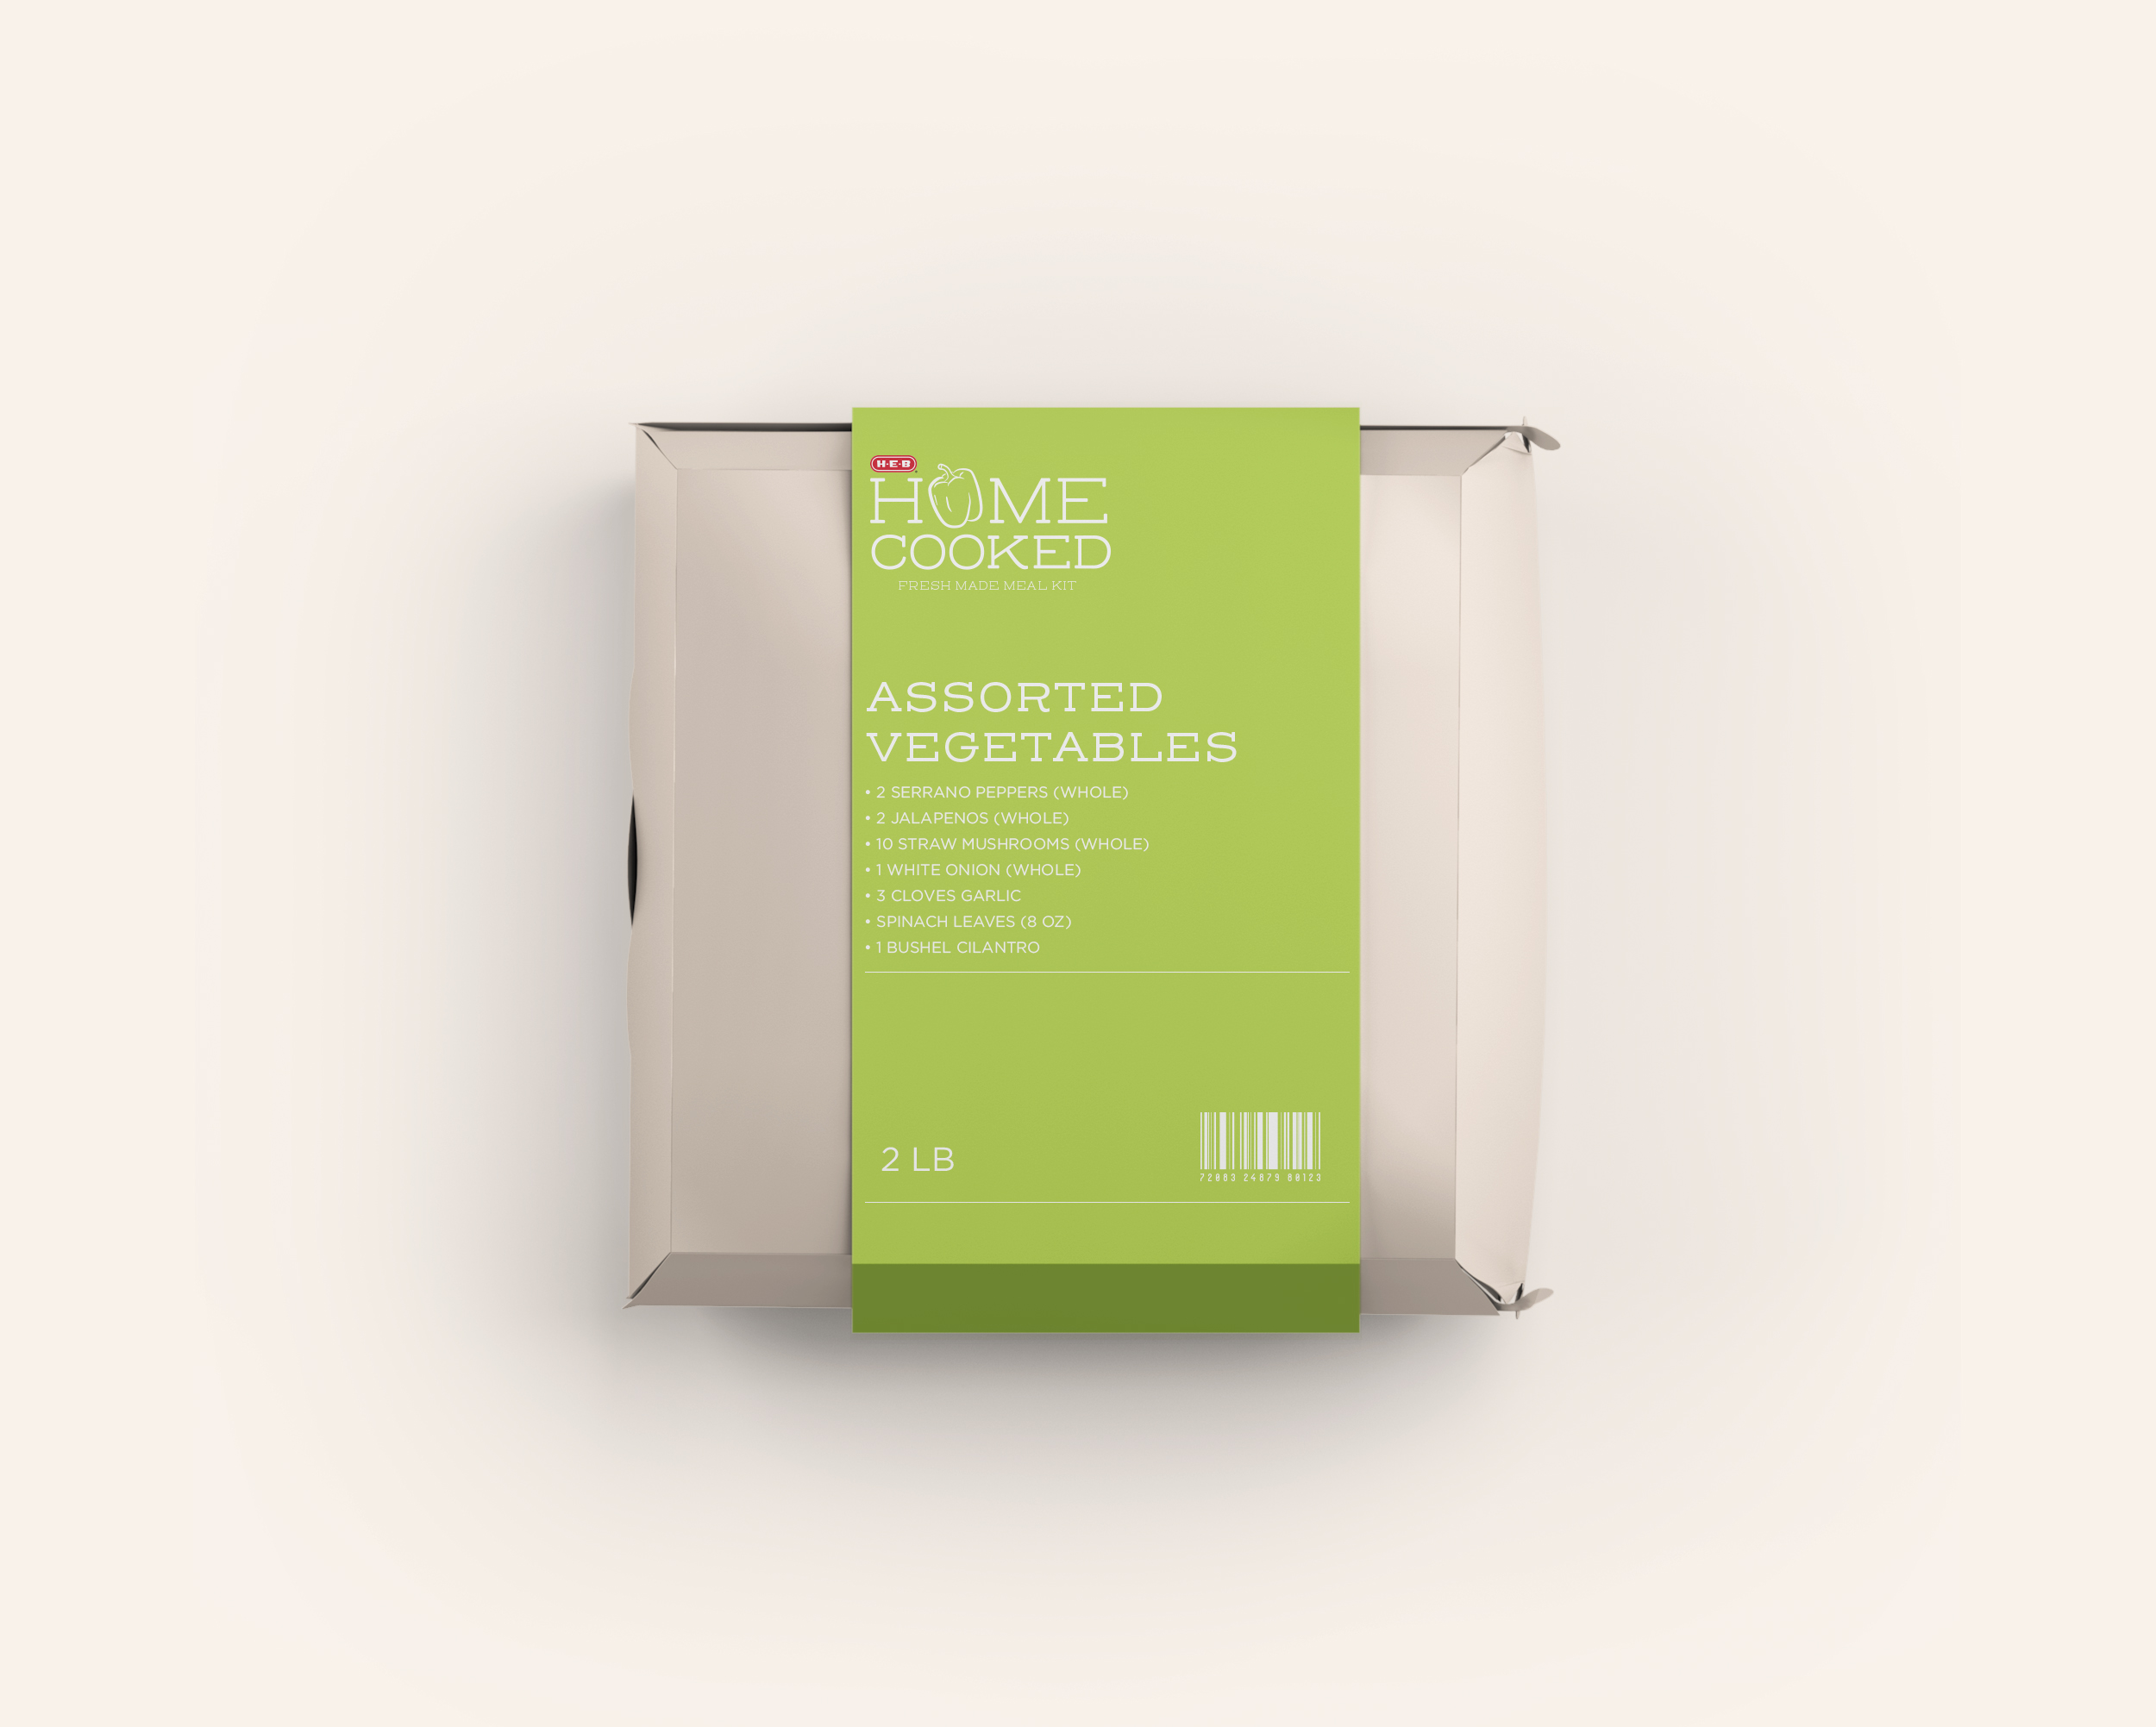 Vegetables would be packaged together in this smaller box, to reduce the use of plastic and also condense the form factor of the box.